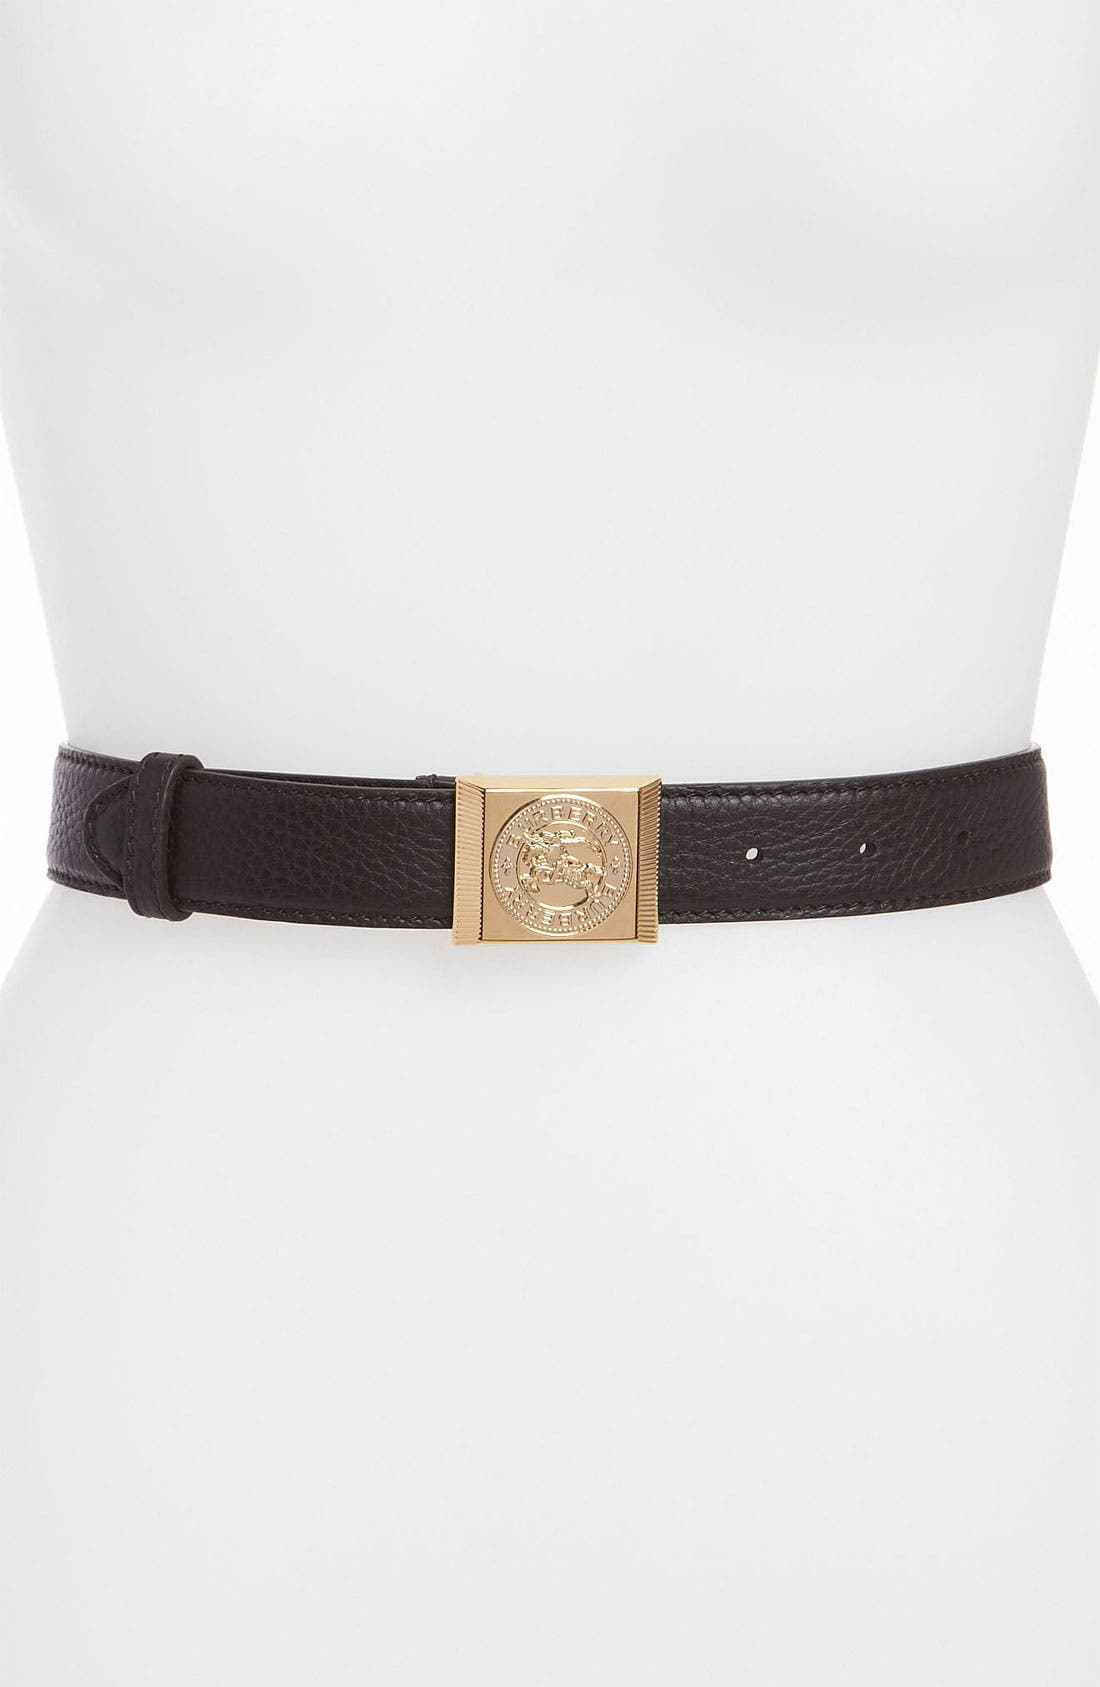 Alternate Image 1 Selected - Burberry 'Brimley' Leather Belt